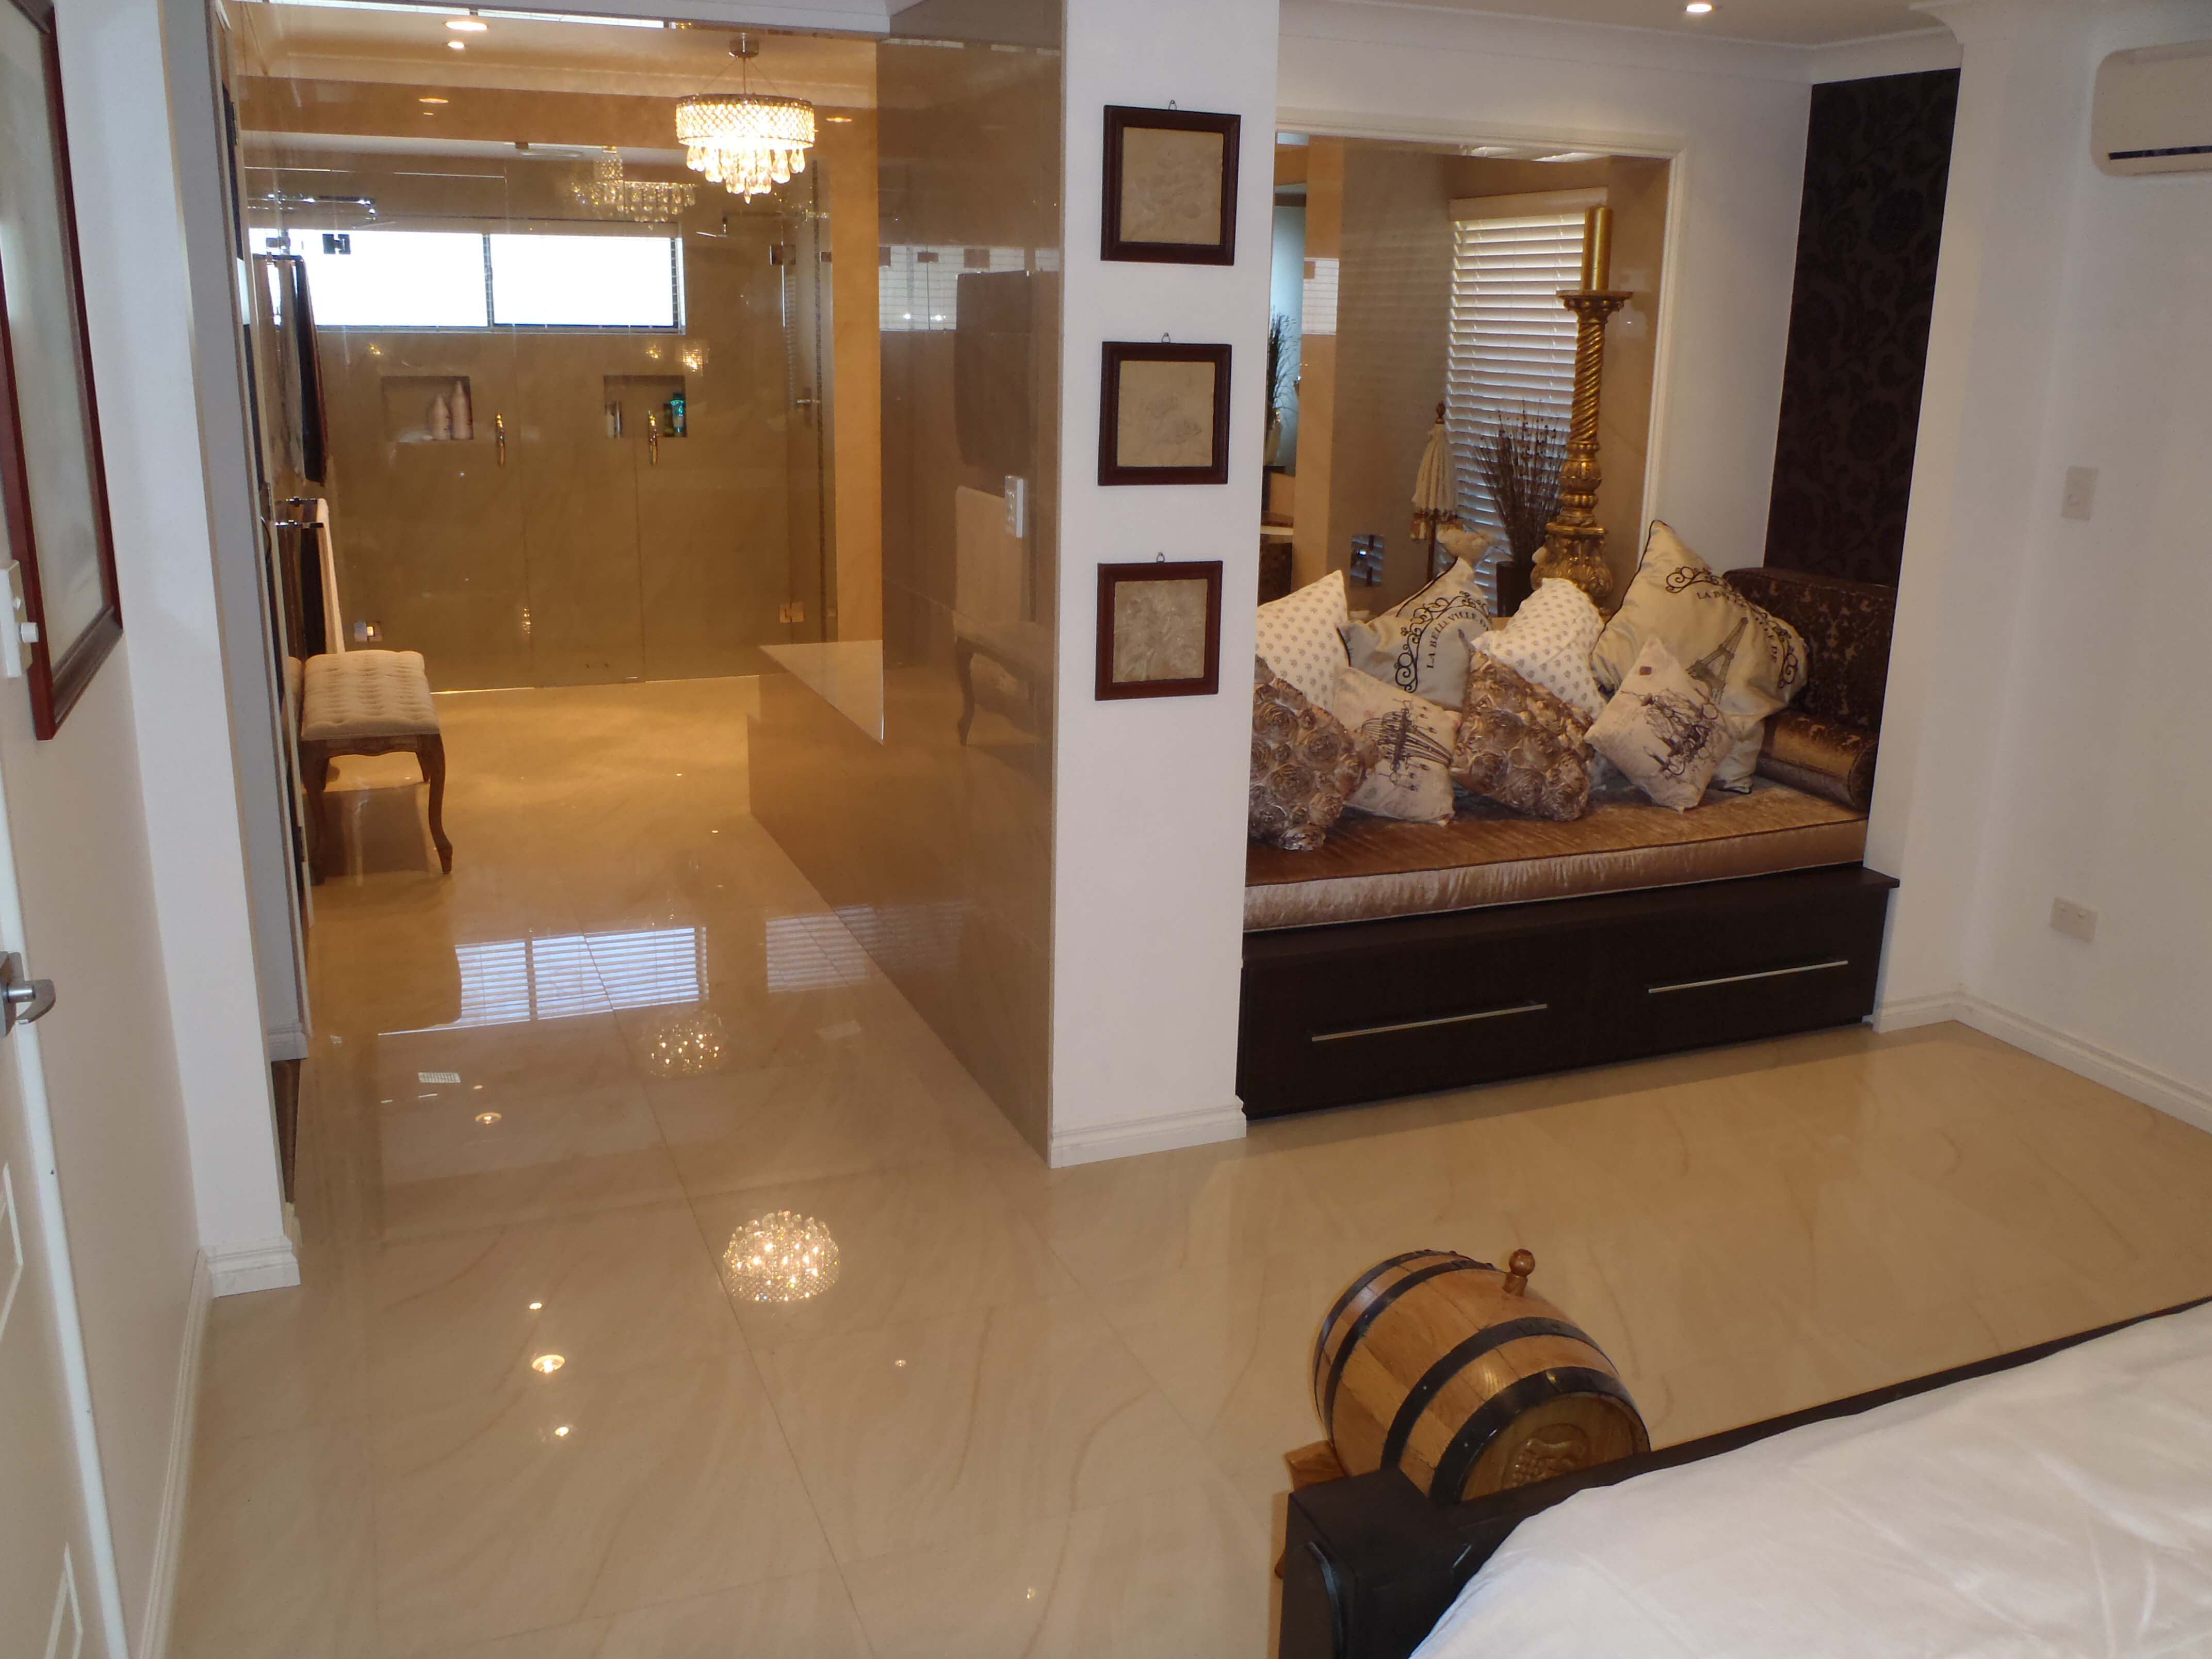 Top Reasons to Hire a Professional to Install Tile Flooring